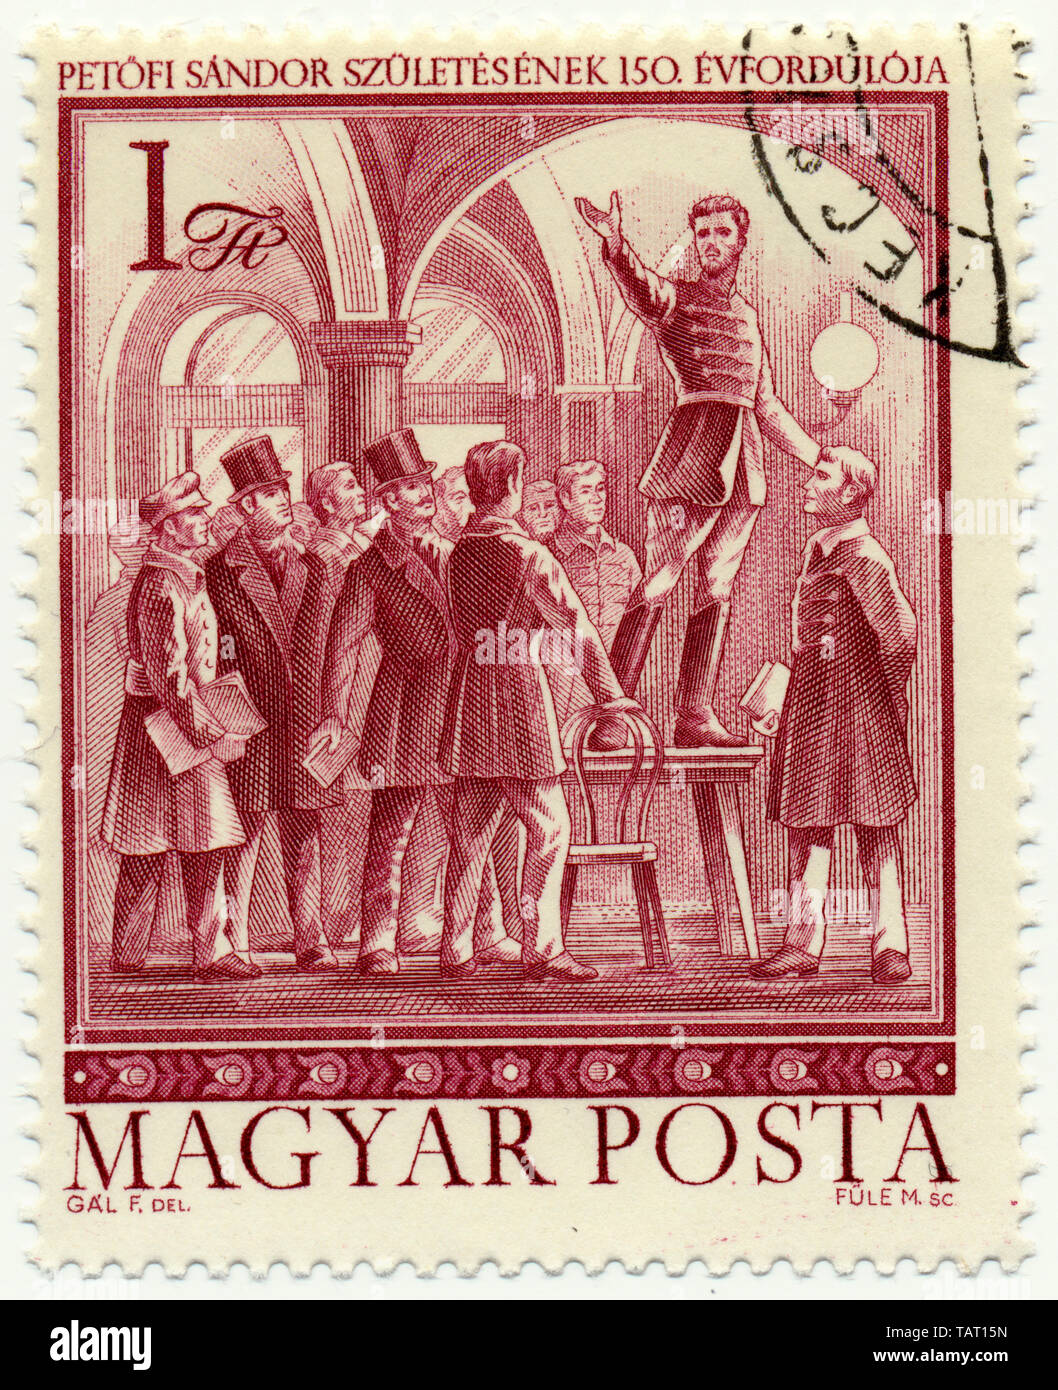 Historic postage stamps from Hungary, the poet and national hero Sandor Petrovic, Historische Briefmarke, der Dichter und Nationalheld Petrovic Sandor, 1975, Ungarn, Europa - Stock Image